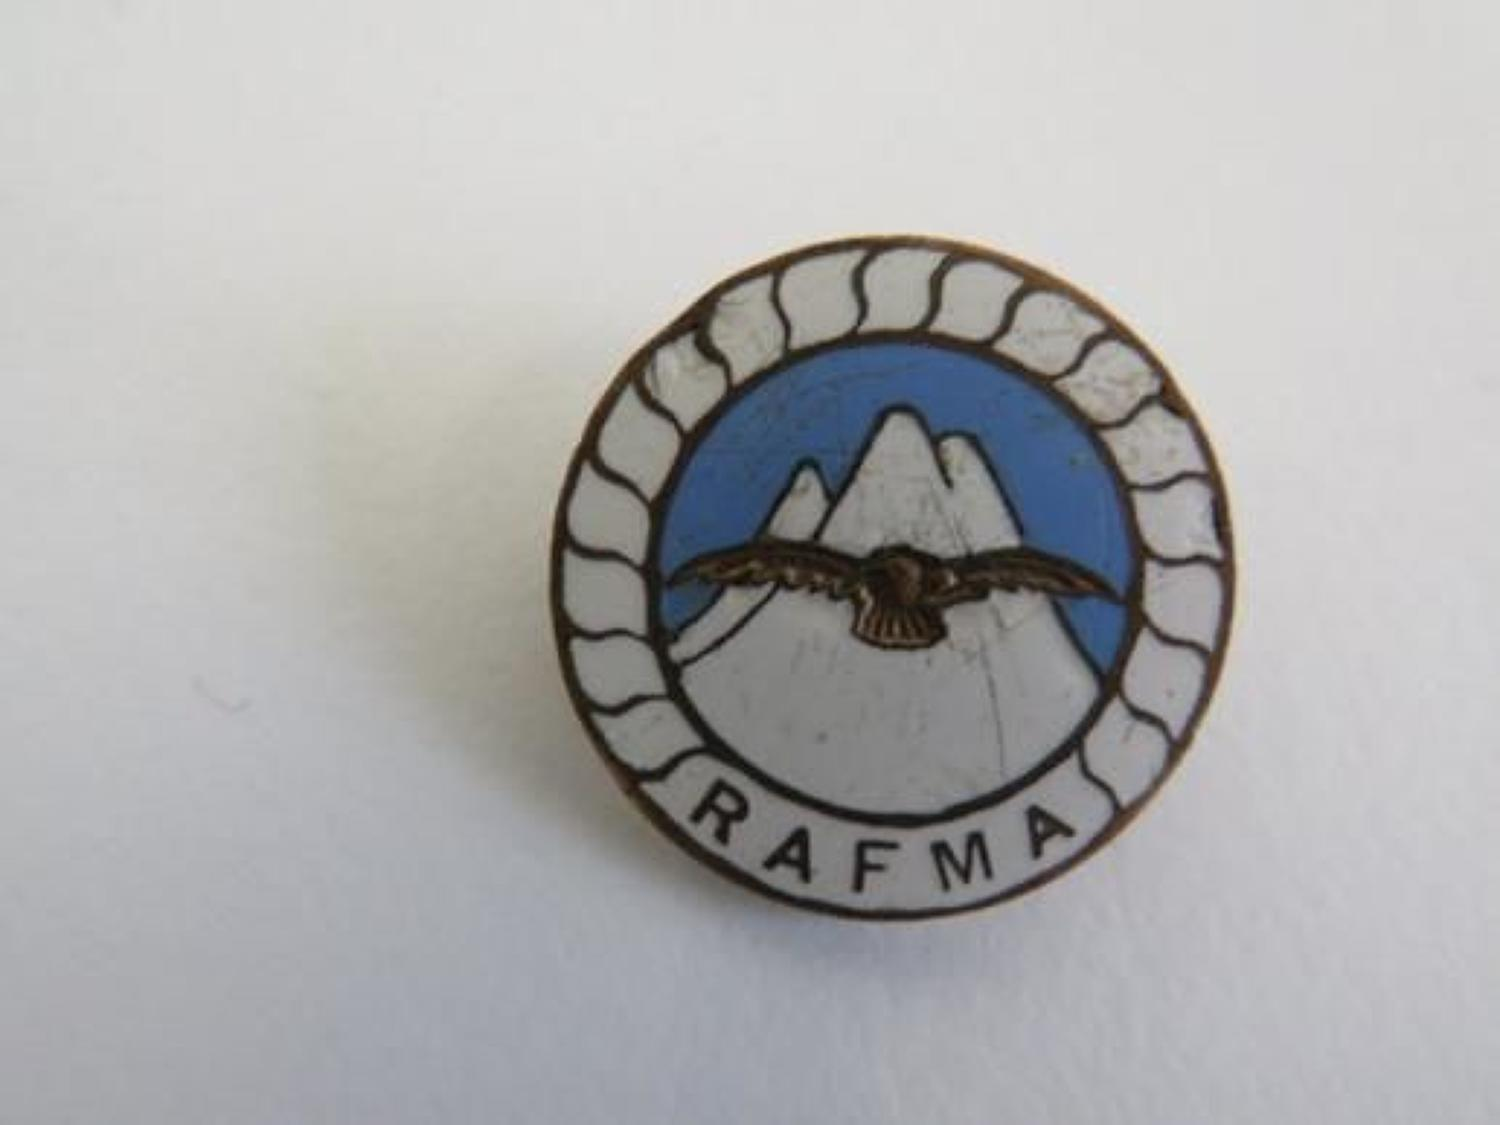 R.A.F.M.A Lapel Badge